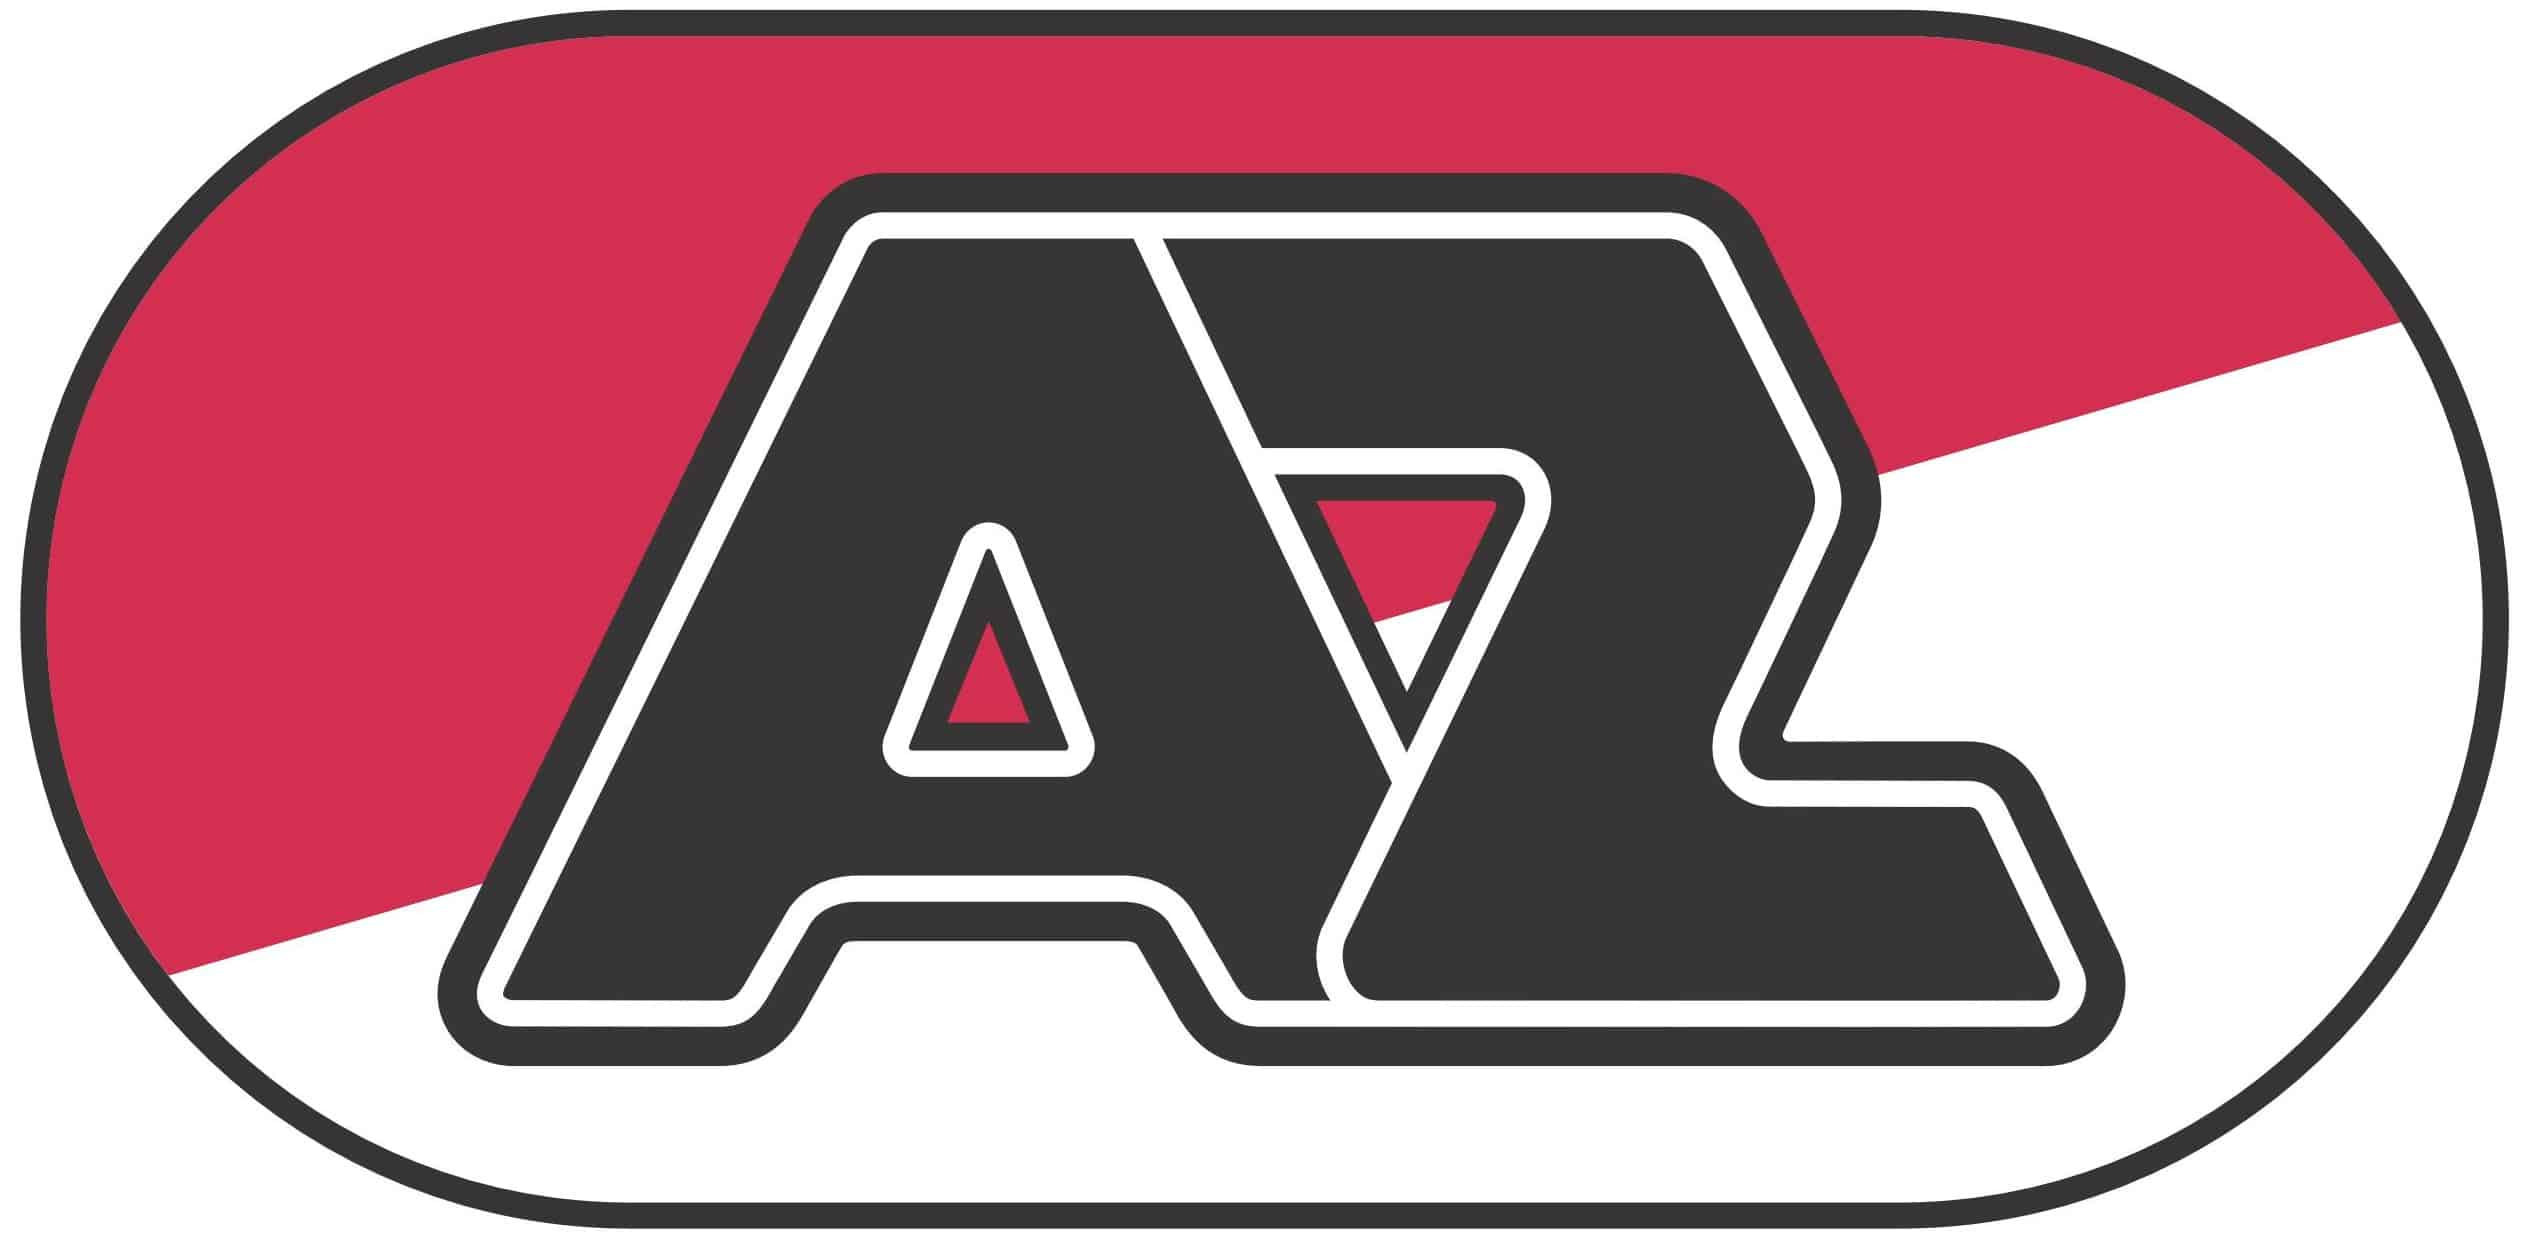 AZ football club logo